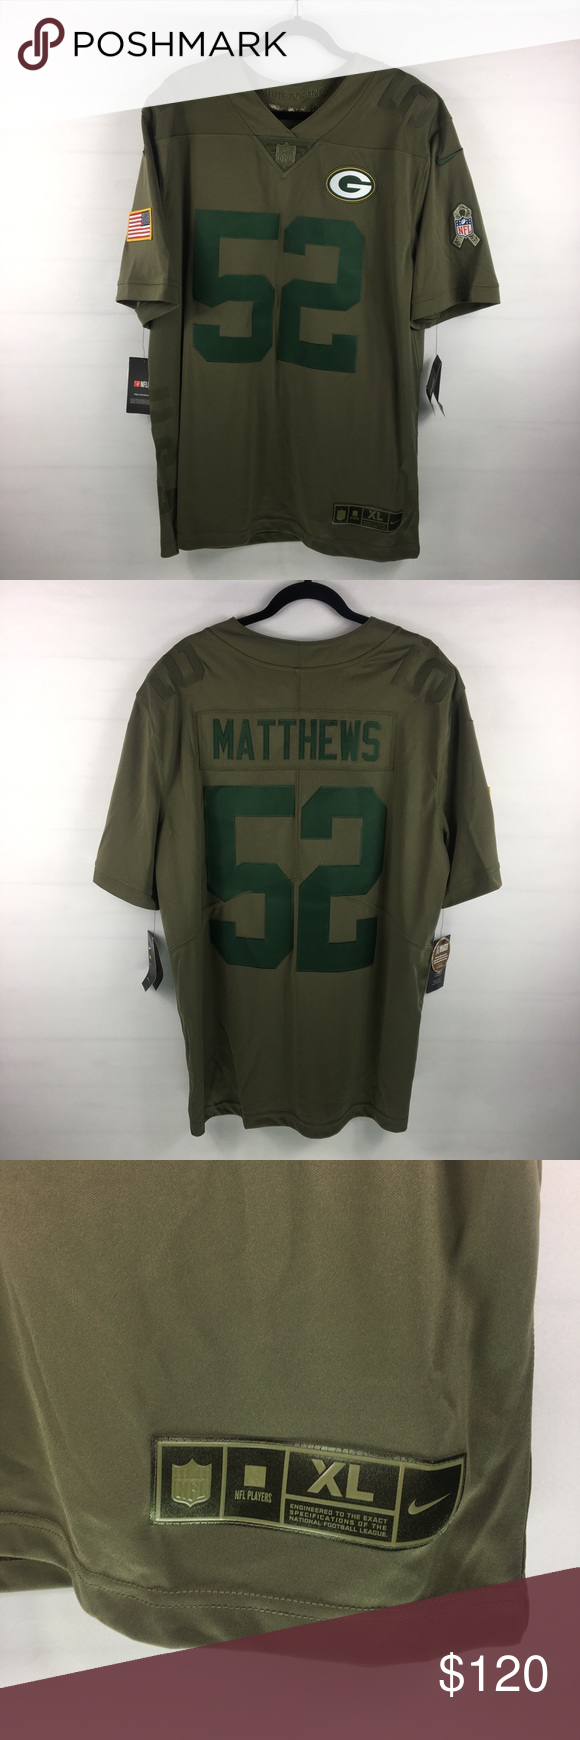 reputable site 73541 b2c9d Nike salute to service Clay Matthews Jersey NFL Brand new ...